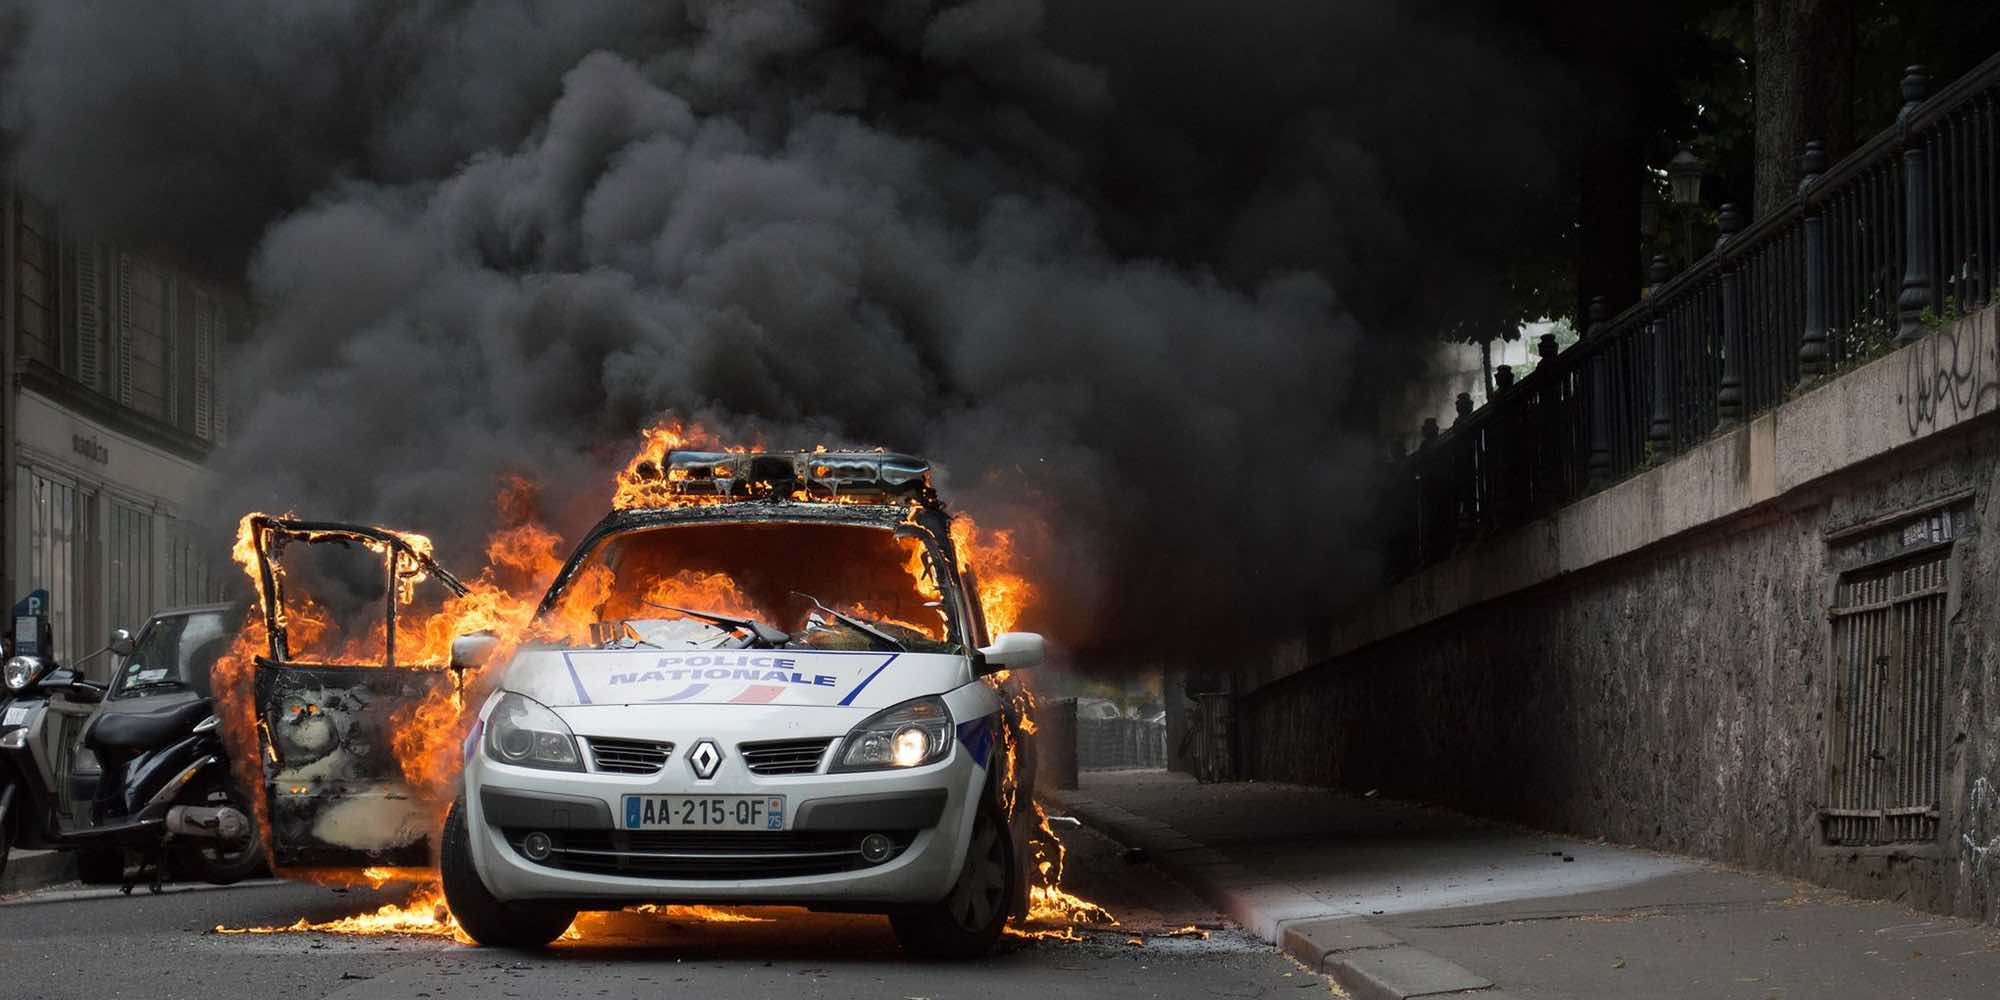 The police car set on fire in Paris in May 2016.